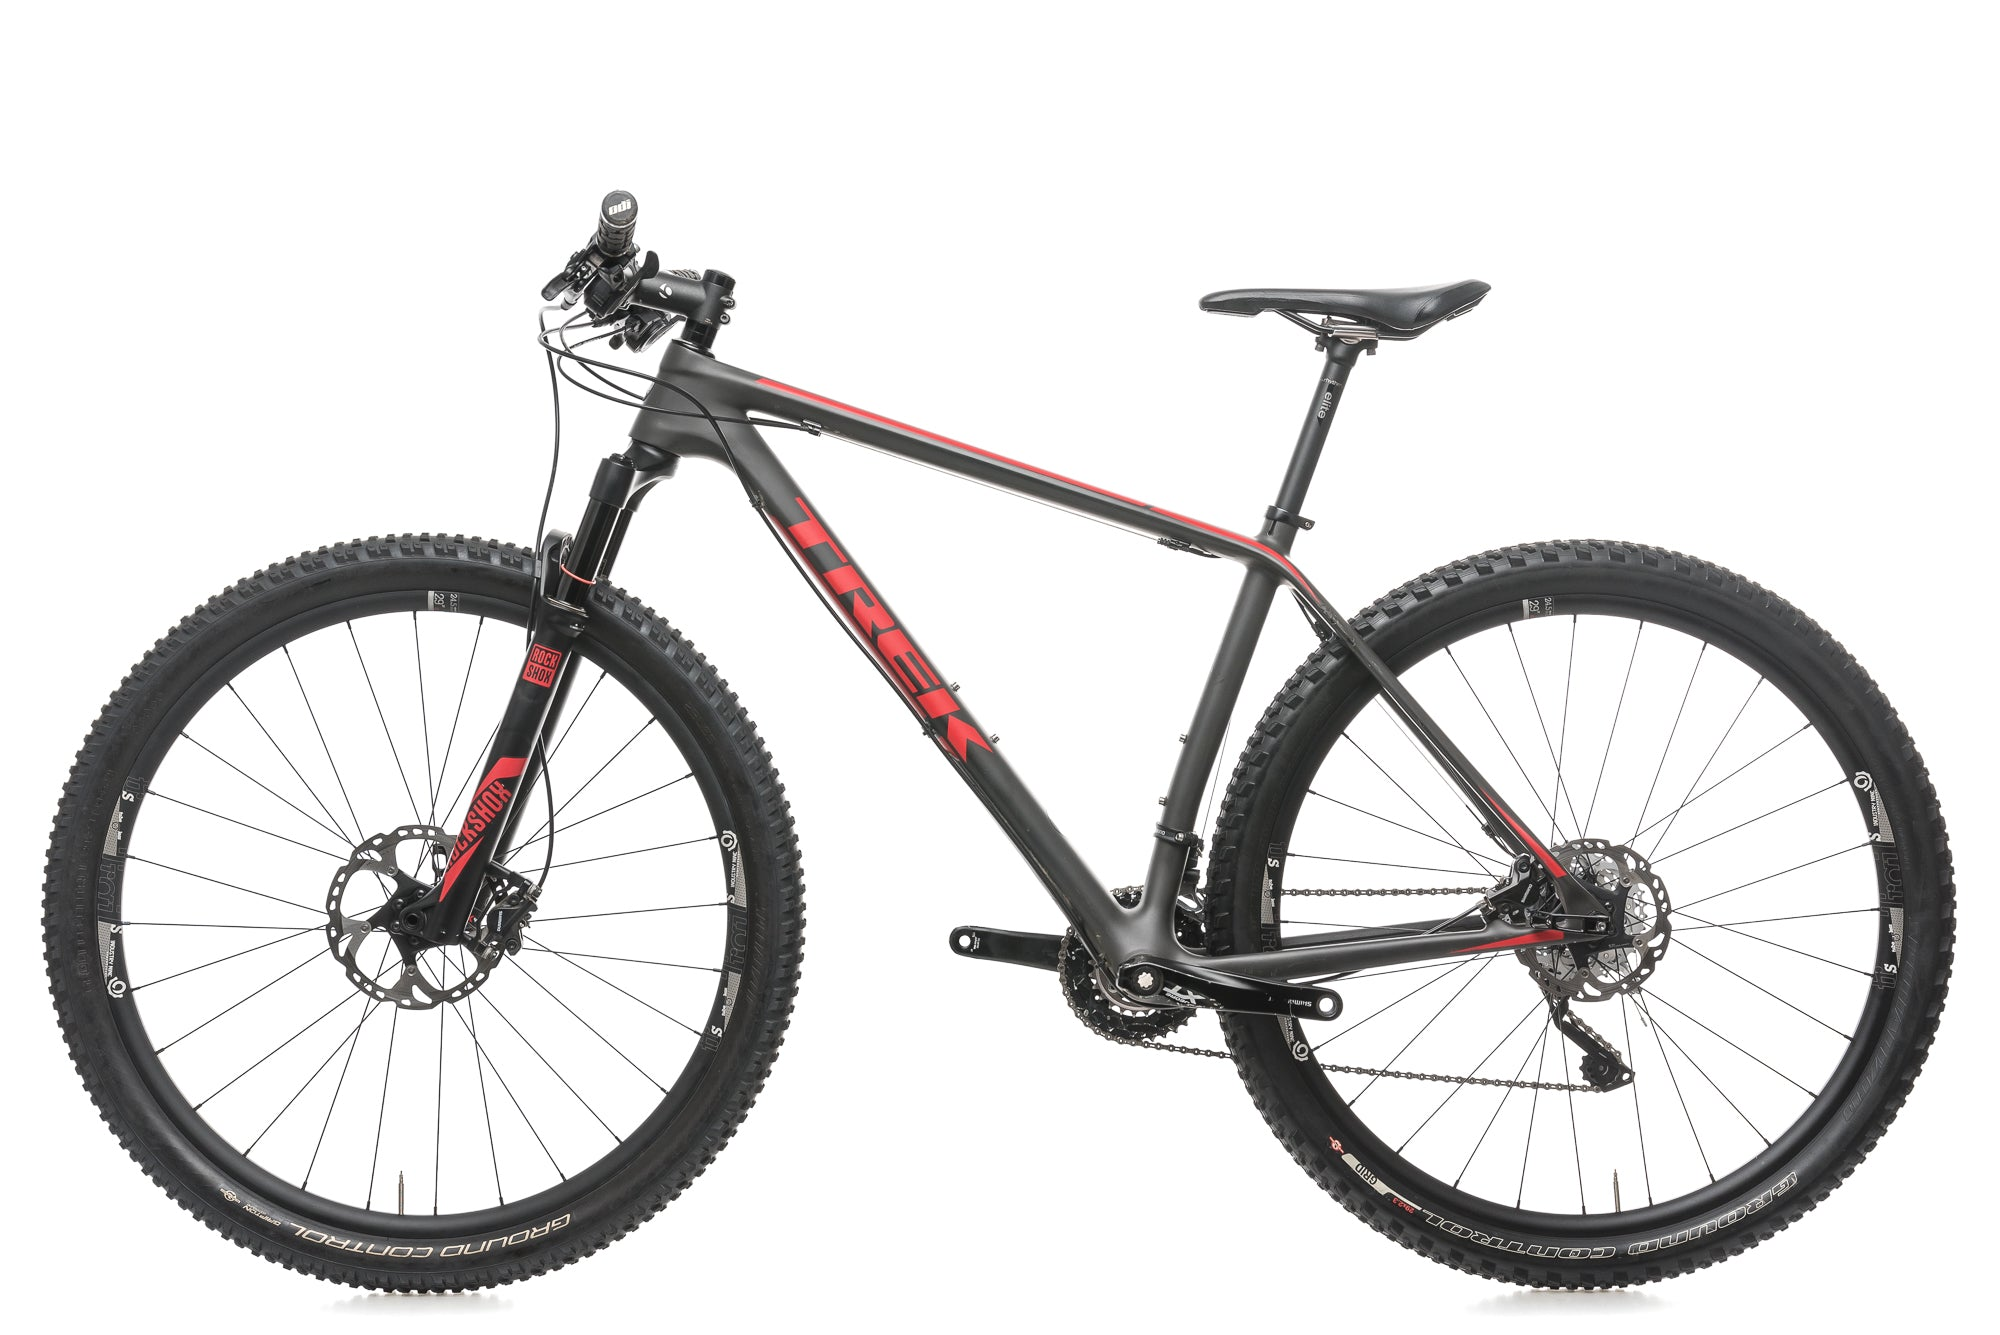 Trek Superfly 9.6 19.5in Bike - 2016